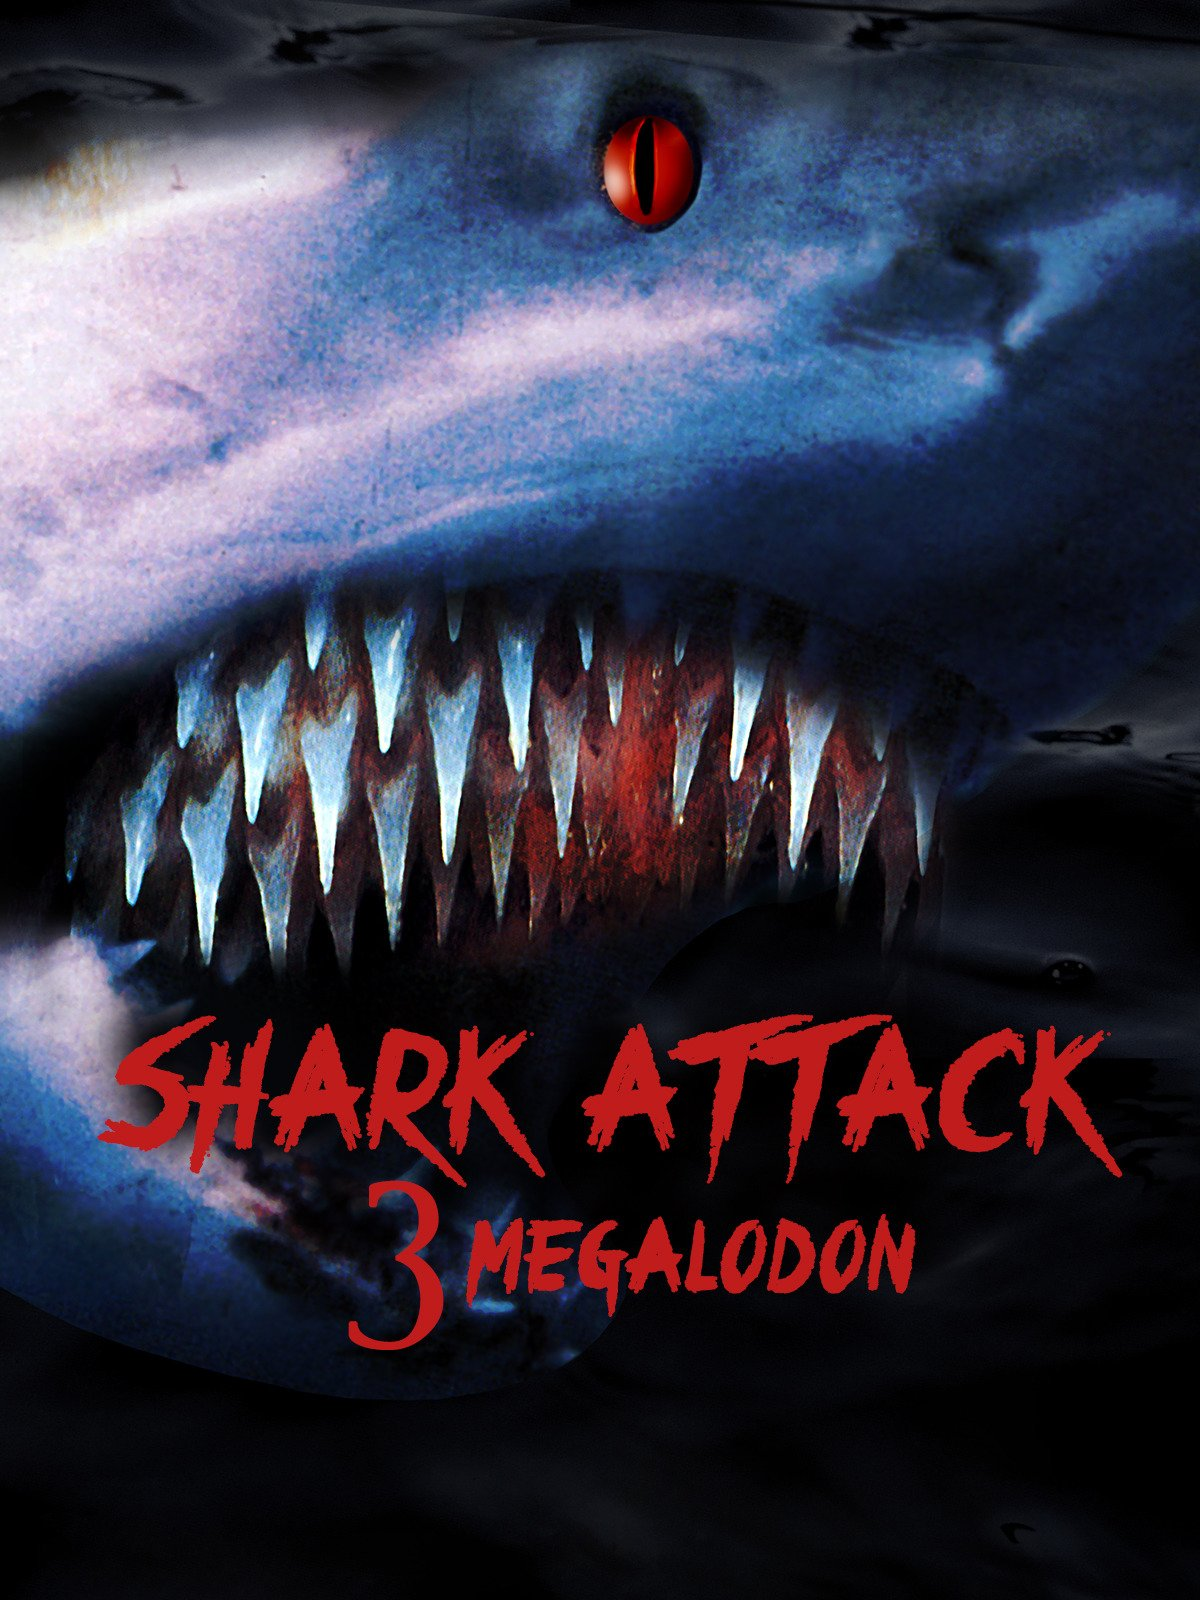 Watch Shark Attack 3 Megalodon Prime Video